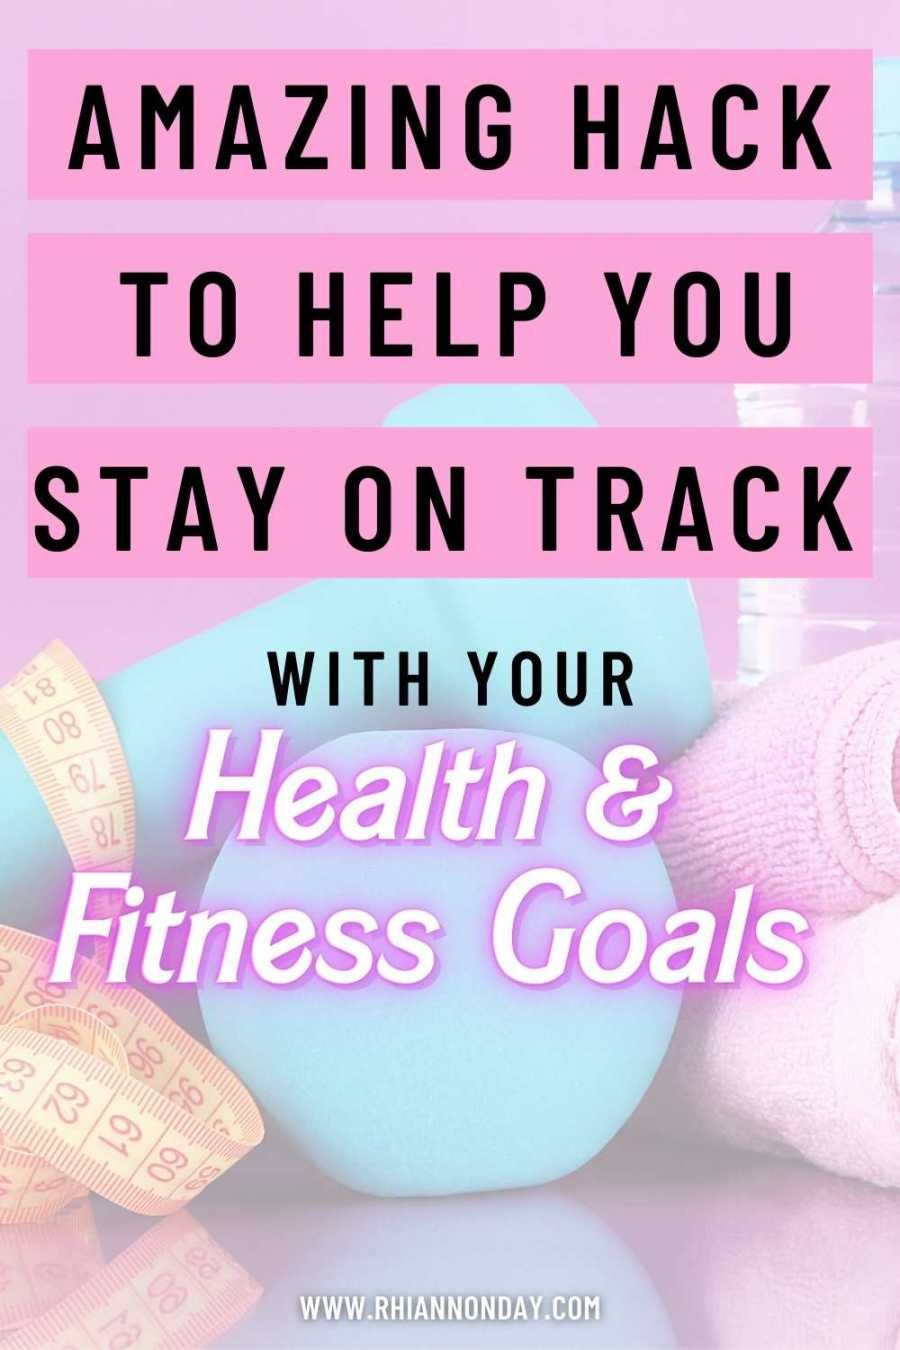 Does staying on track with your fitness goals and balancing your life feel tricky?  Try this simple hack - a guideline to live by that takes the guilt and guesswork out of staying on track. #weightloss #fitness #womensfitness #weightlossjourney #fitspo